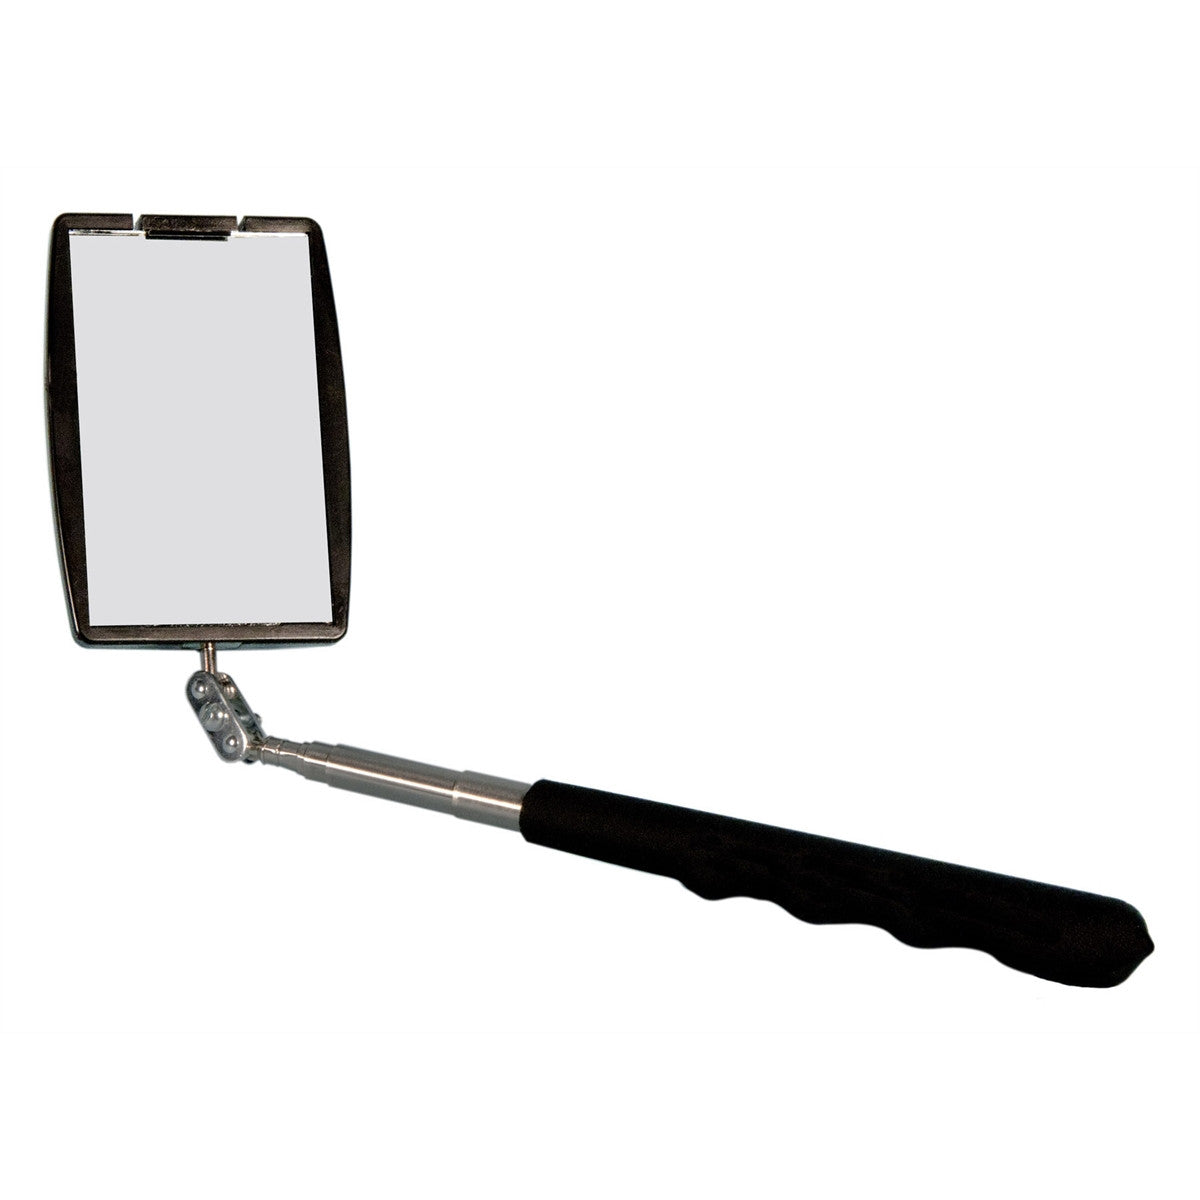 INSPECTION MIRROR, EXTENDABLE & ADJUSTABLE #TK2